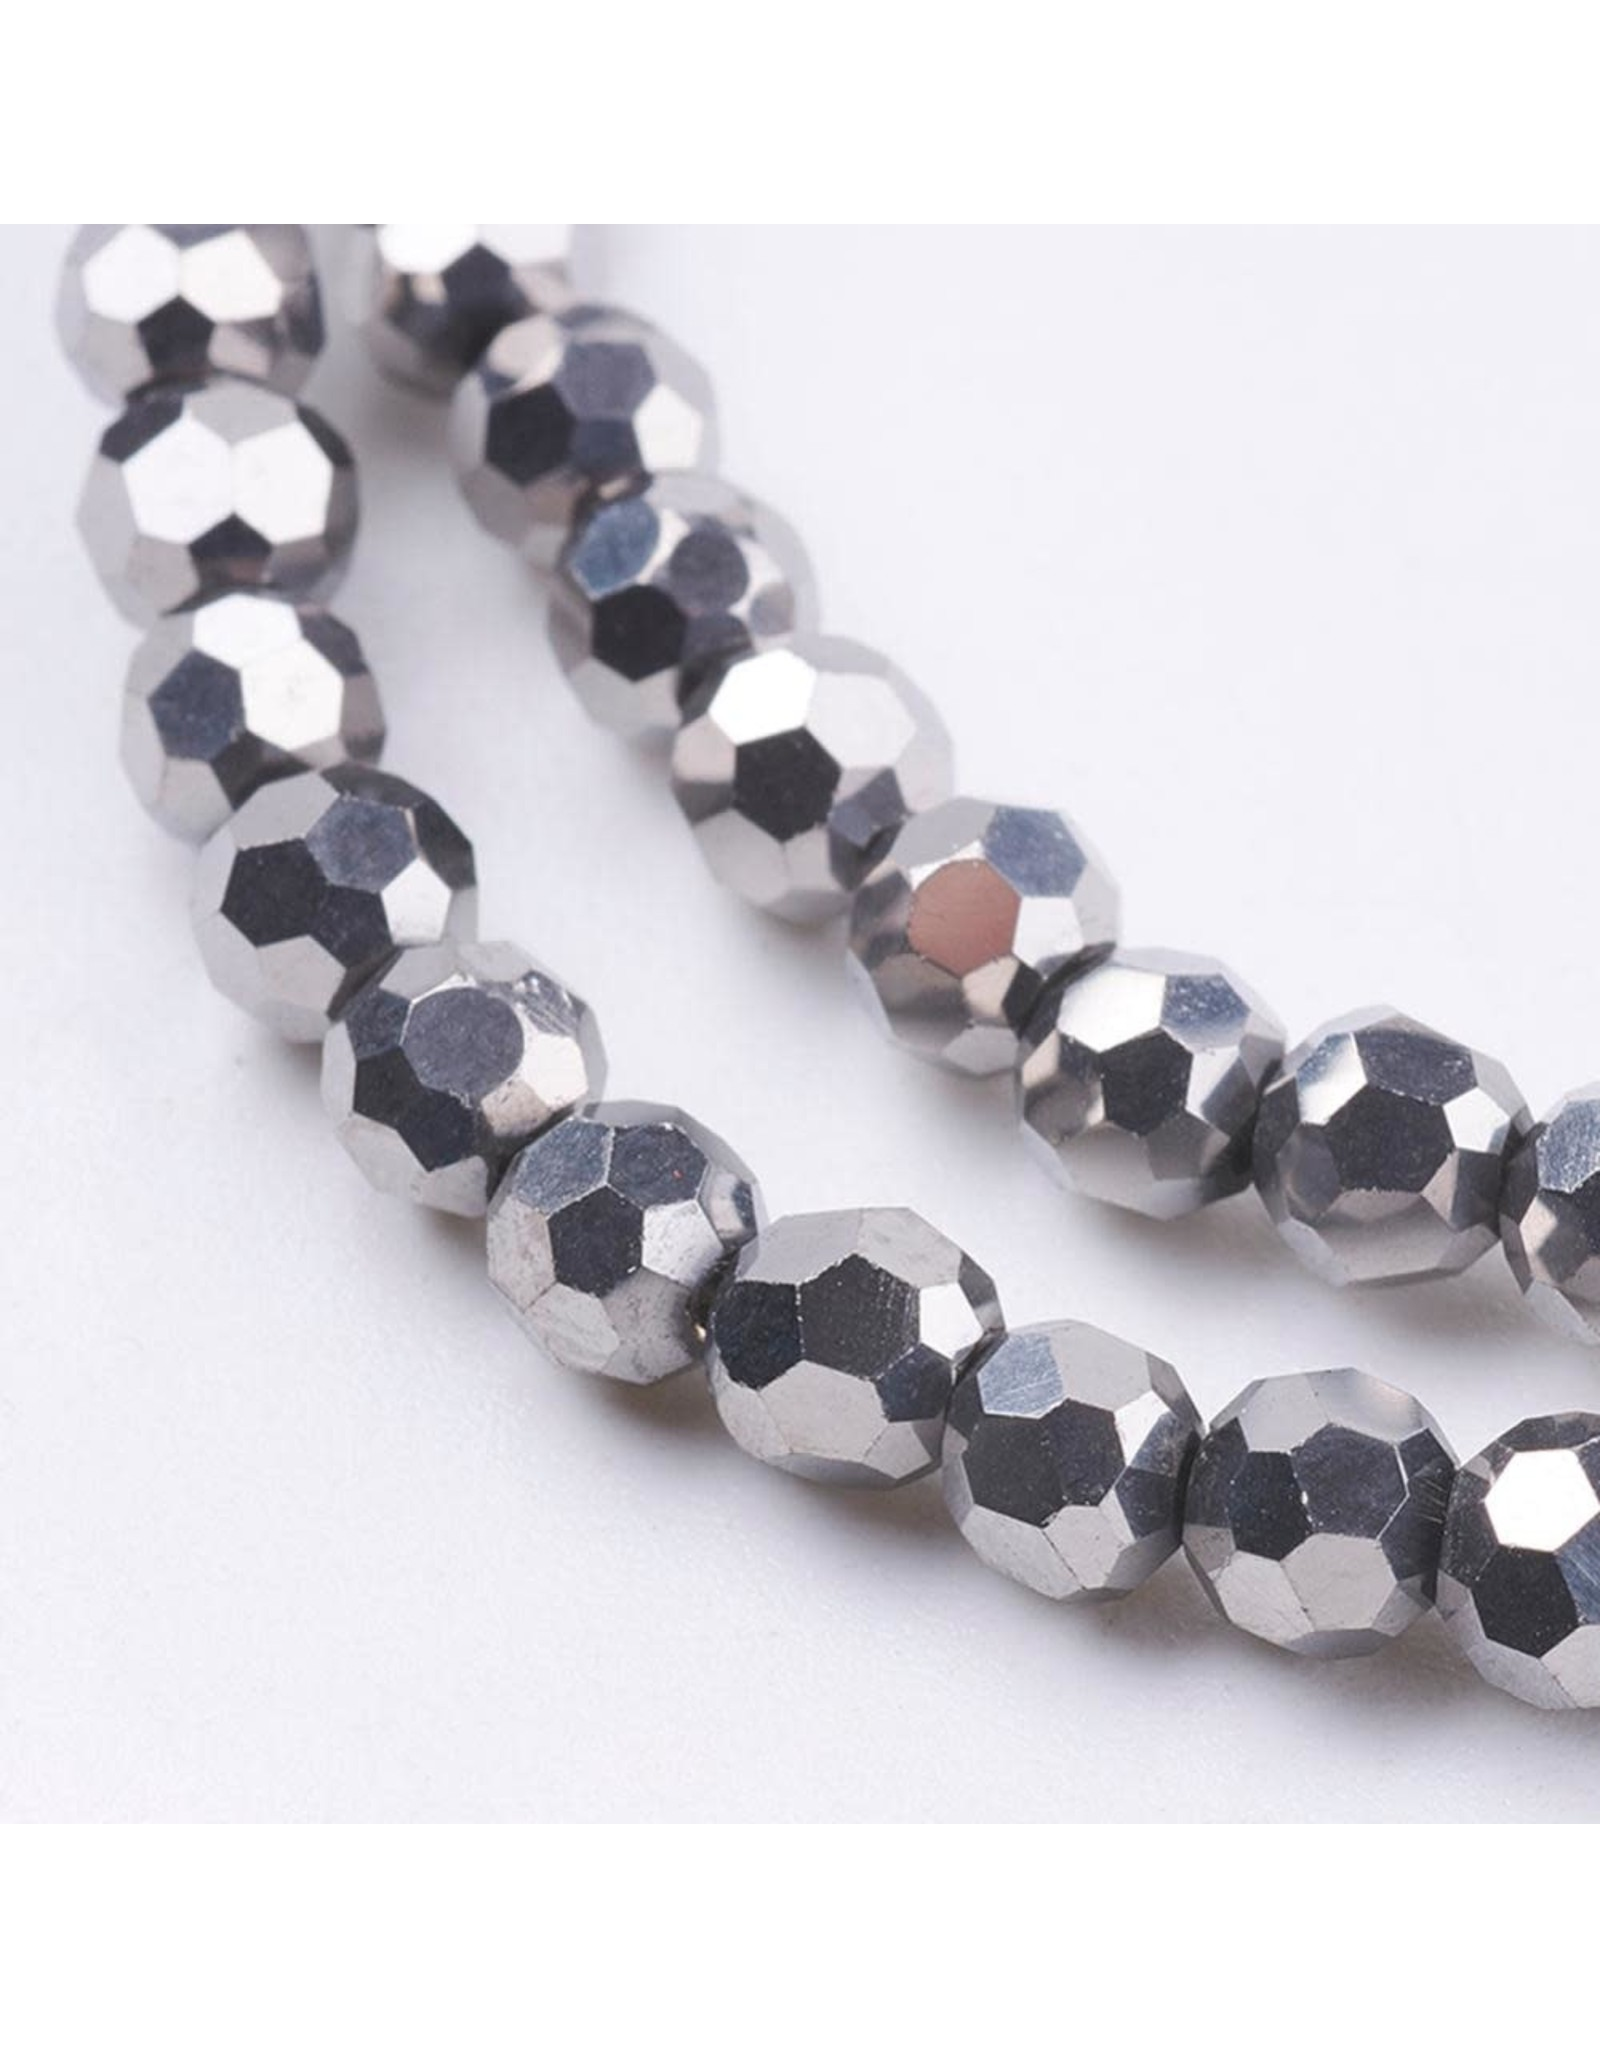 4mm Round Silver Metallic  x95